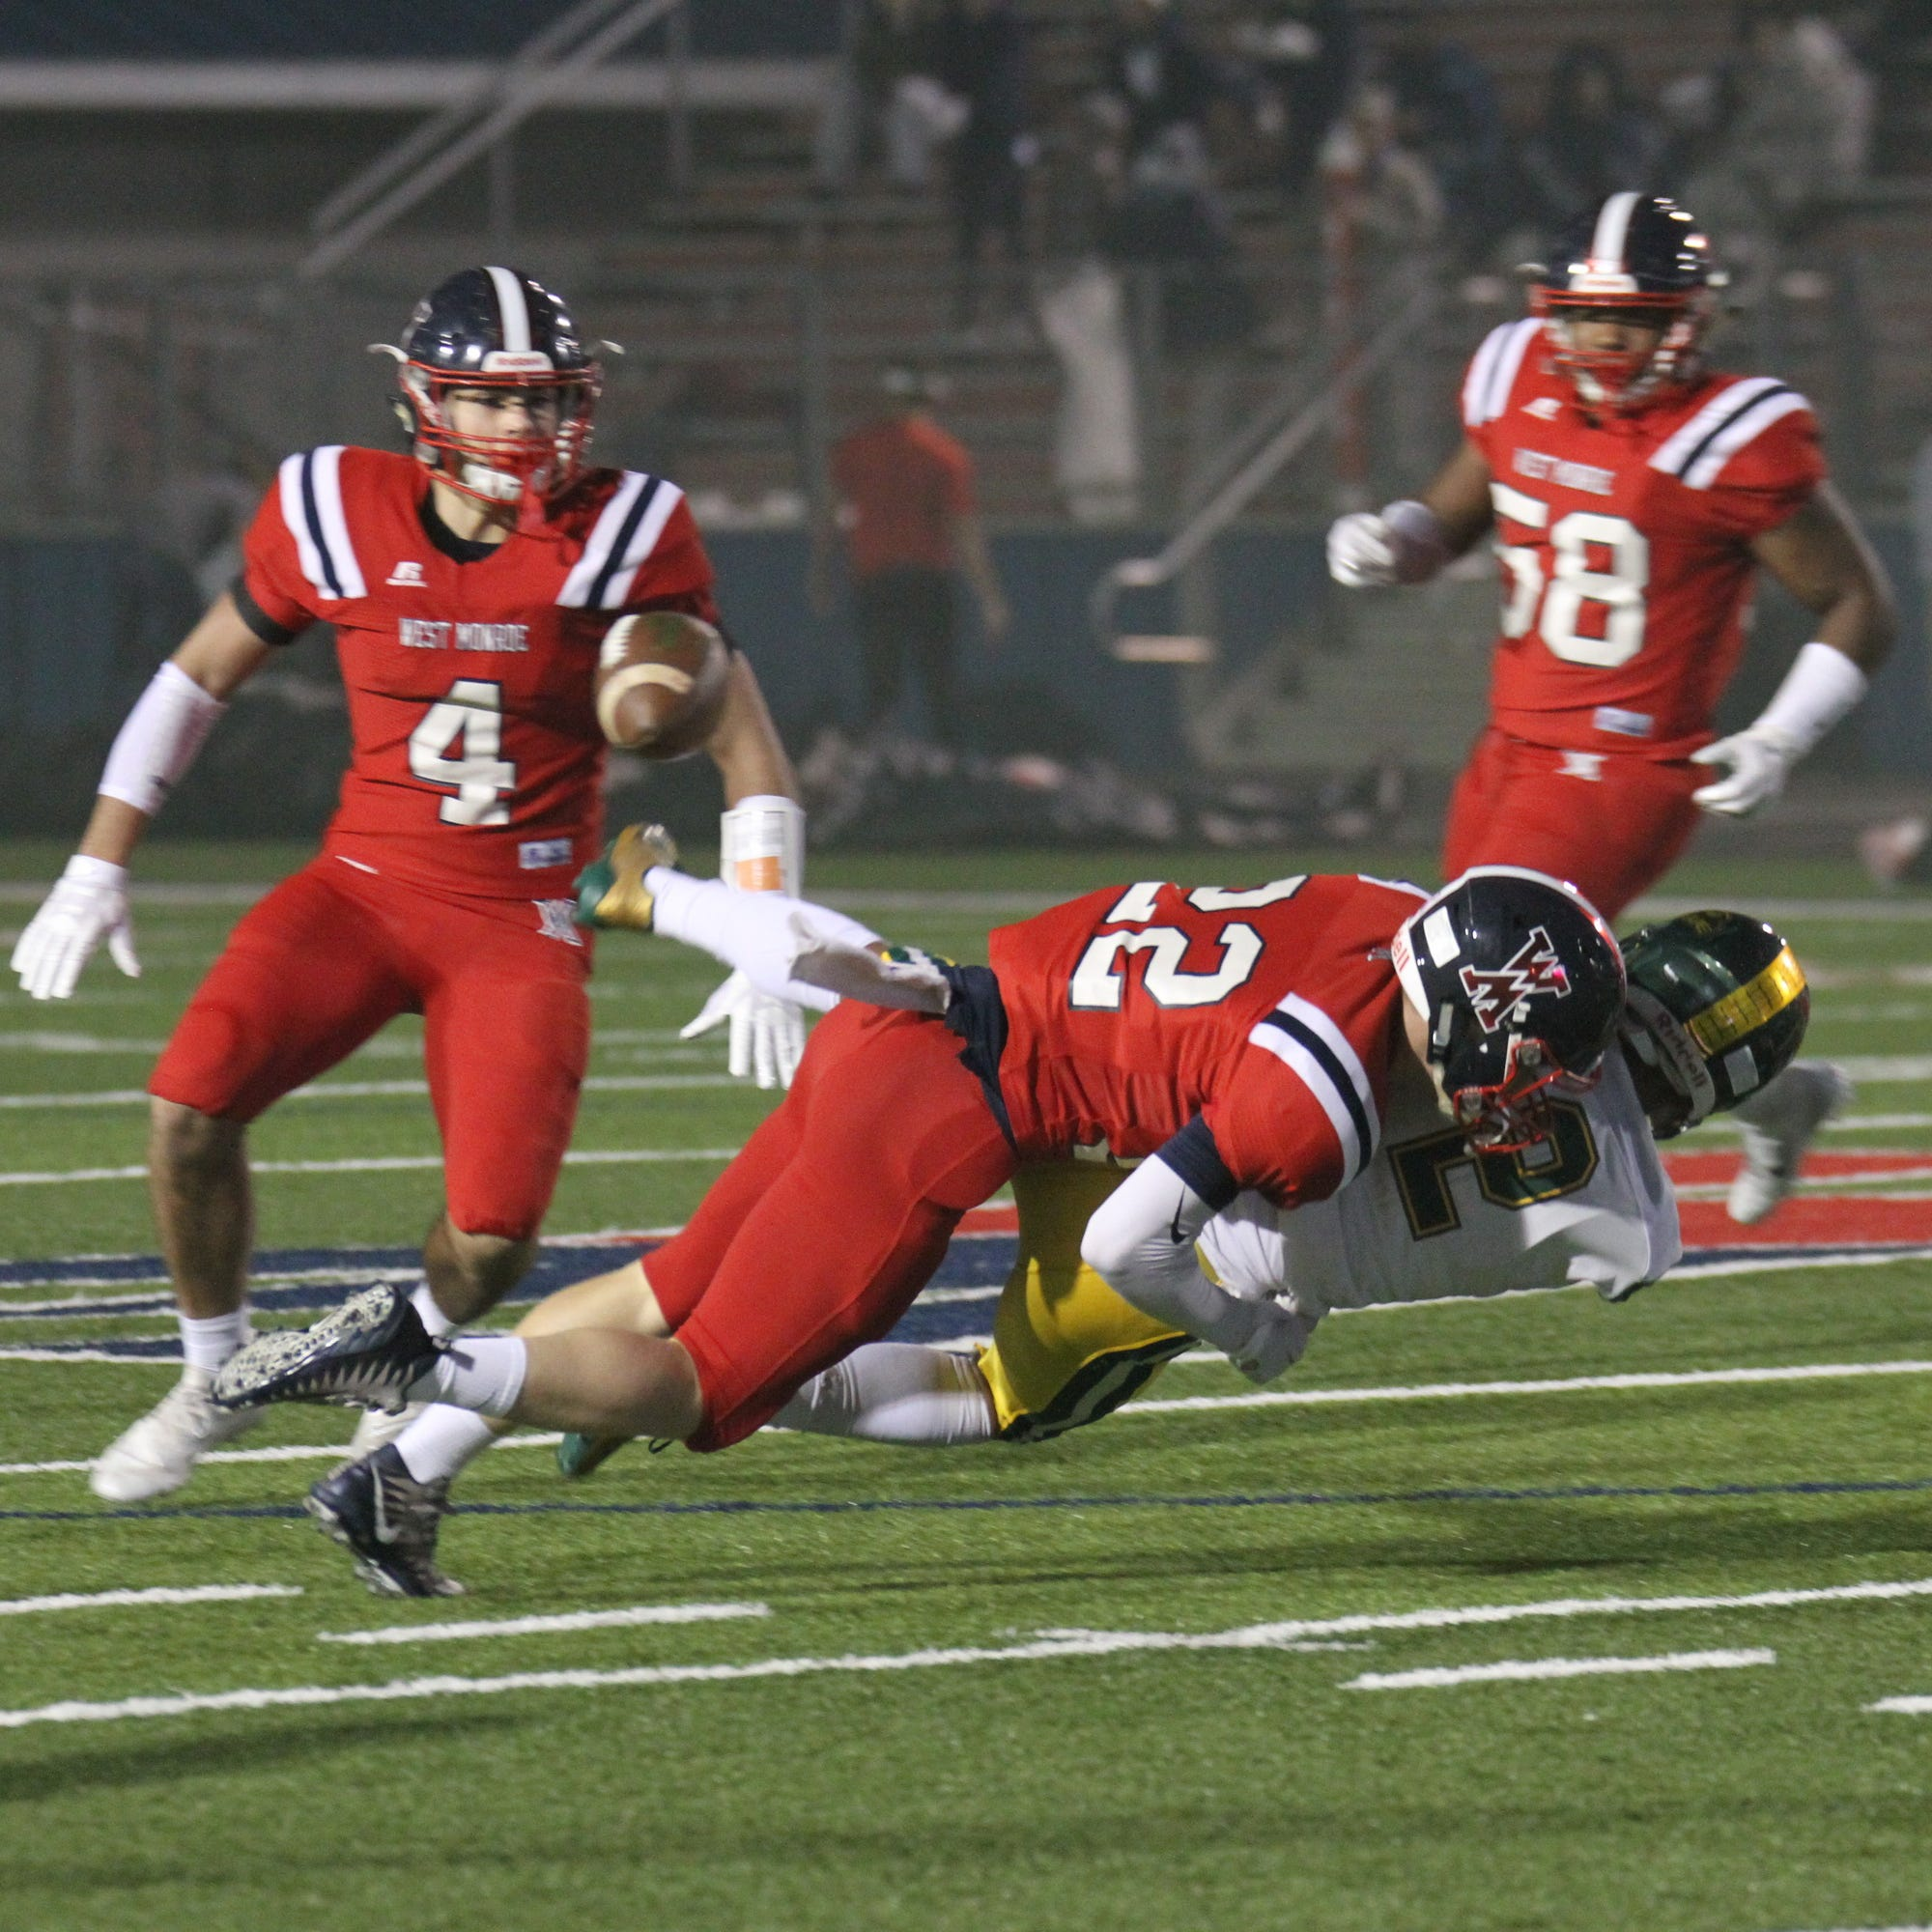 West Monroe senior cornerback Zak Knox (22) causes a fumble during the second round playoff game against Captain Shreve Friday, Nov. 16, 2018 at Rebel Stadium.